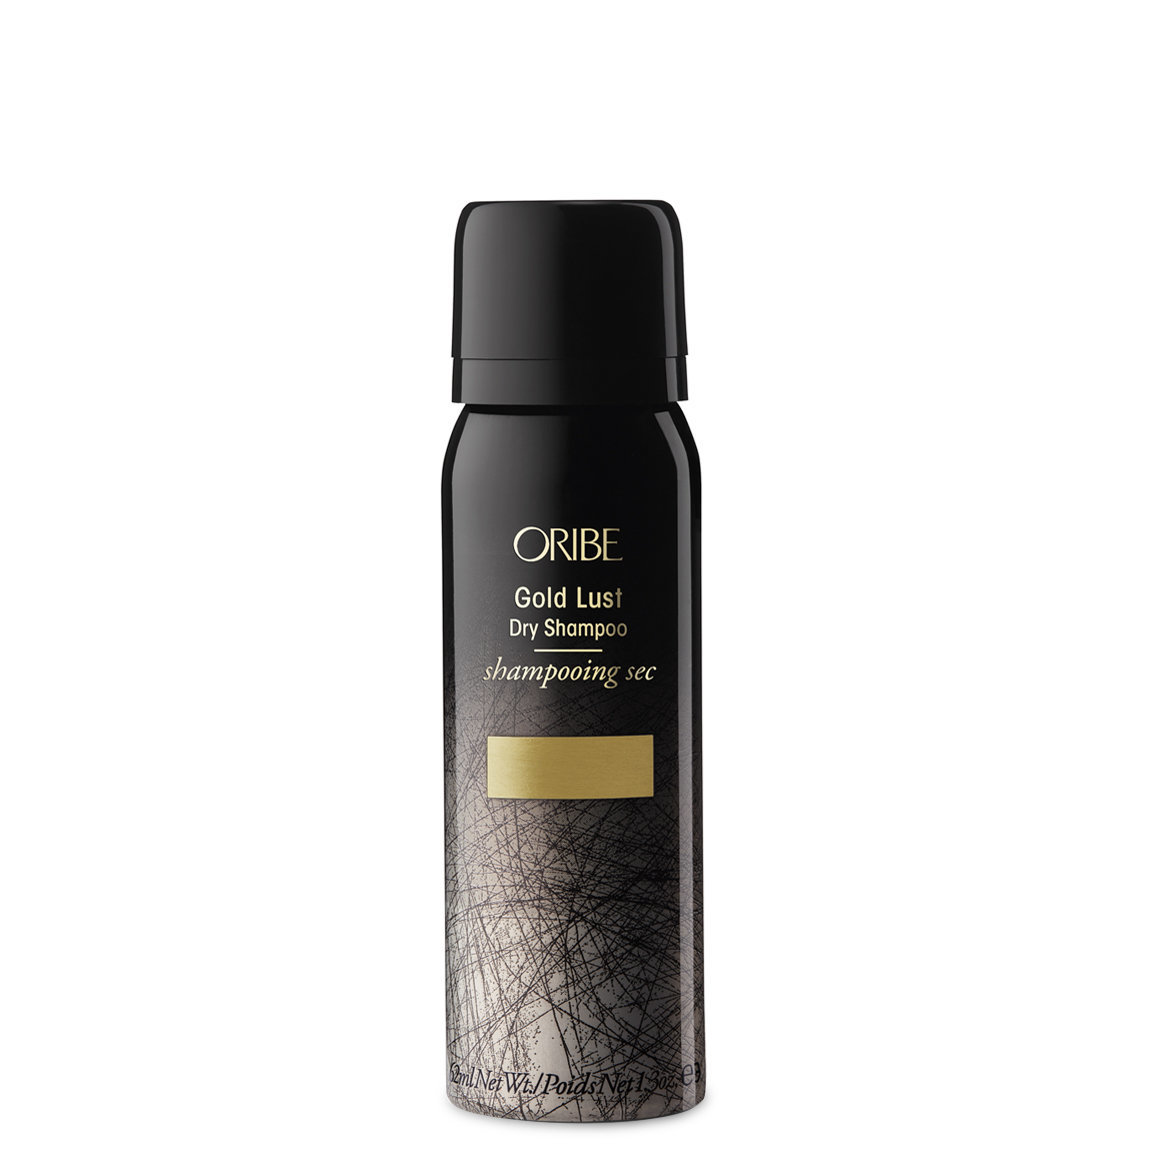 Oribe Gold Lust Dry Shampoo 1.3 oz alternative view 1 - product swatch.